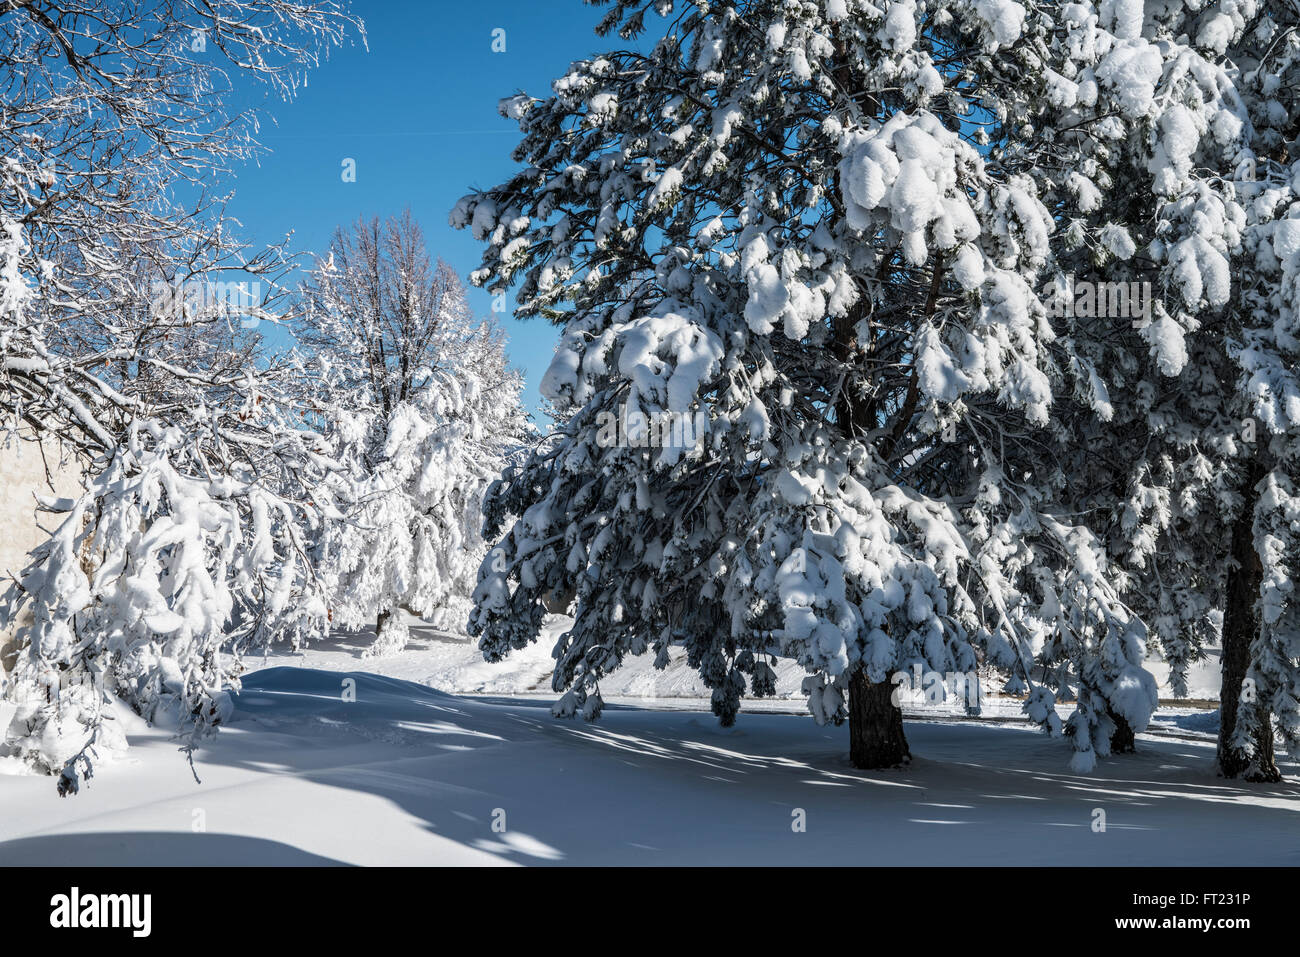 Morning after heavy snowstorm showing trees and lawn under heavy snow cover - Stock Image